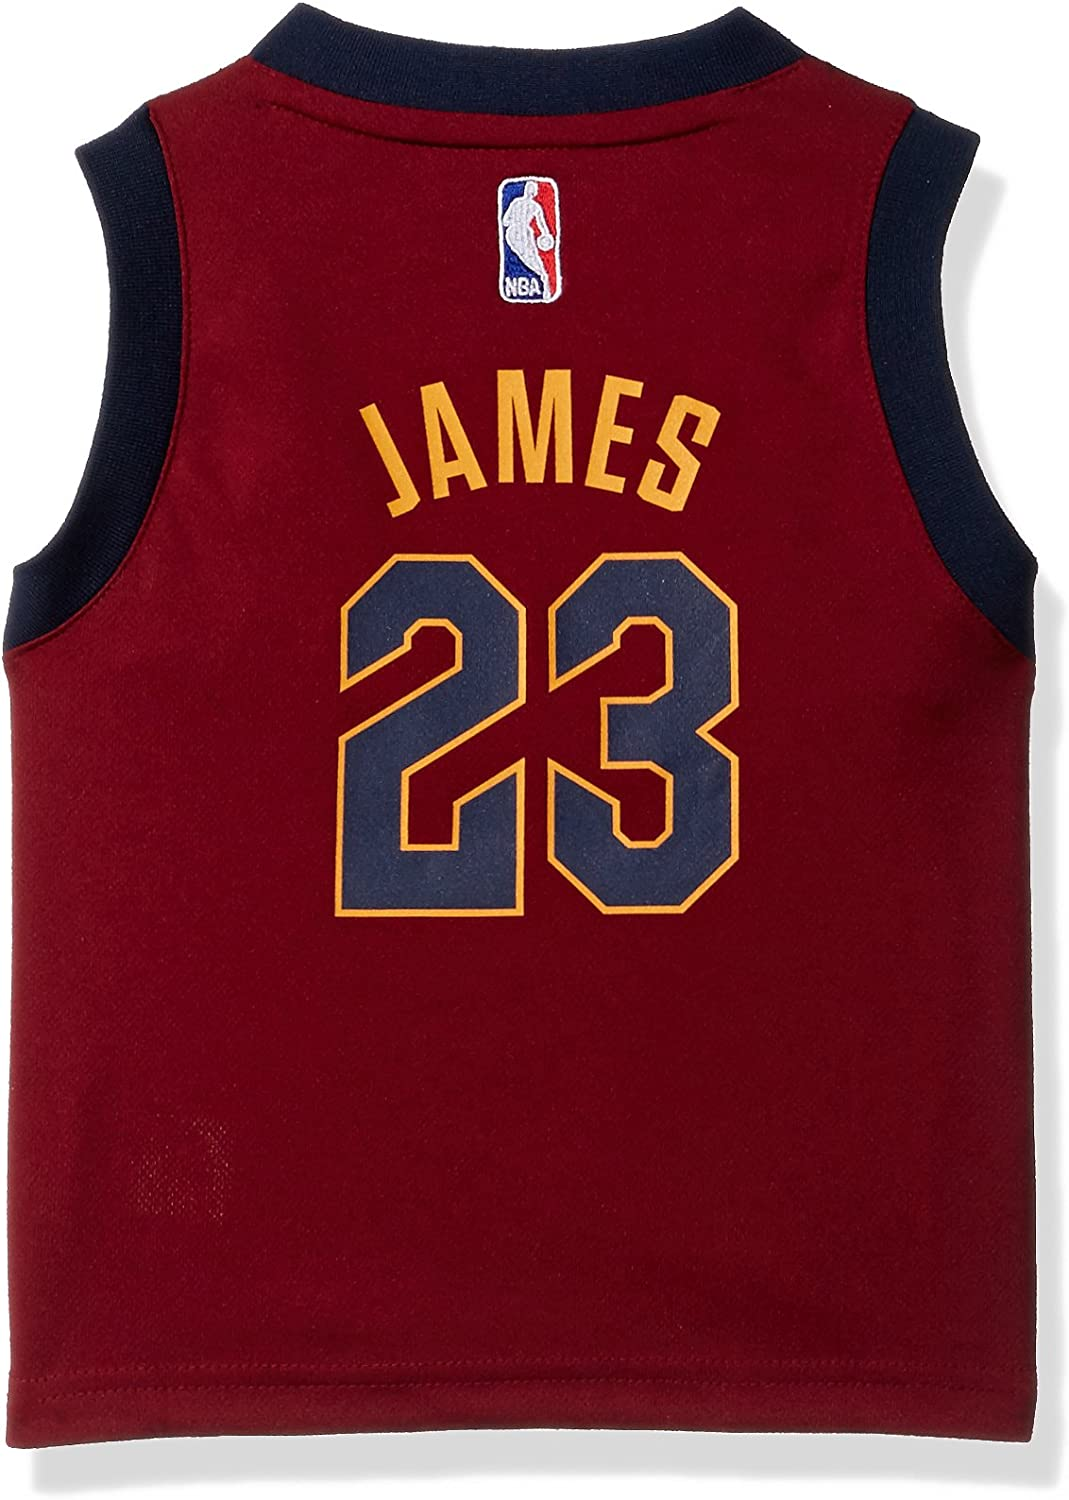 Outerstuff NBA Unisex-Child Replica Road Player Jersey